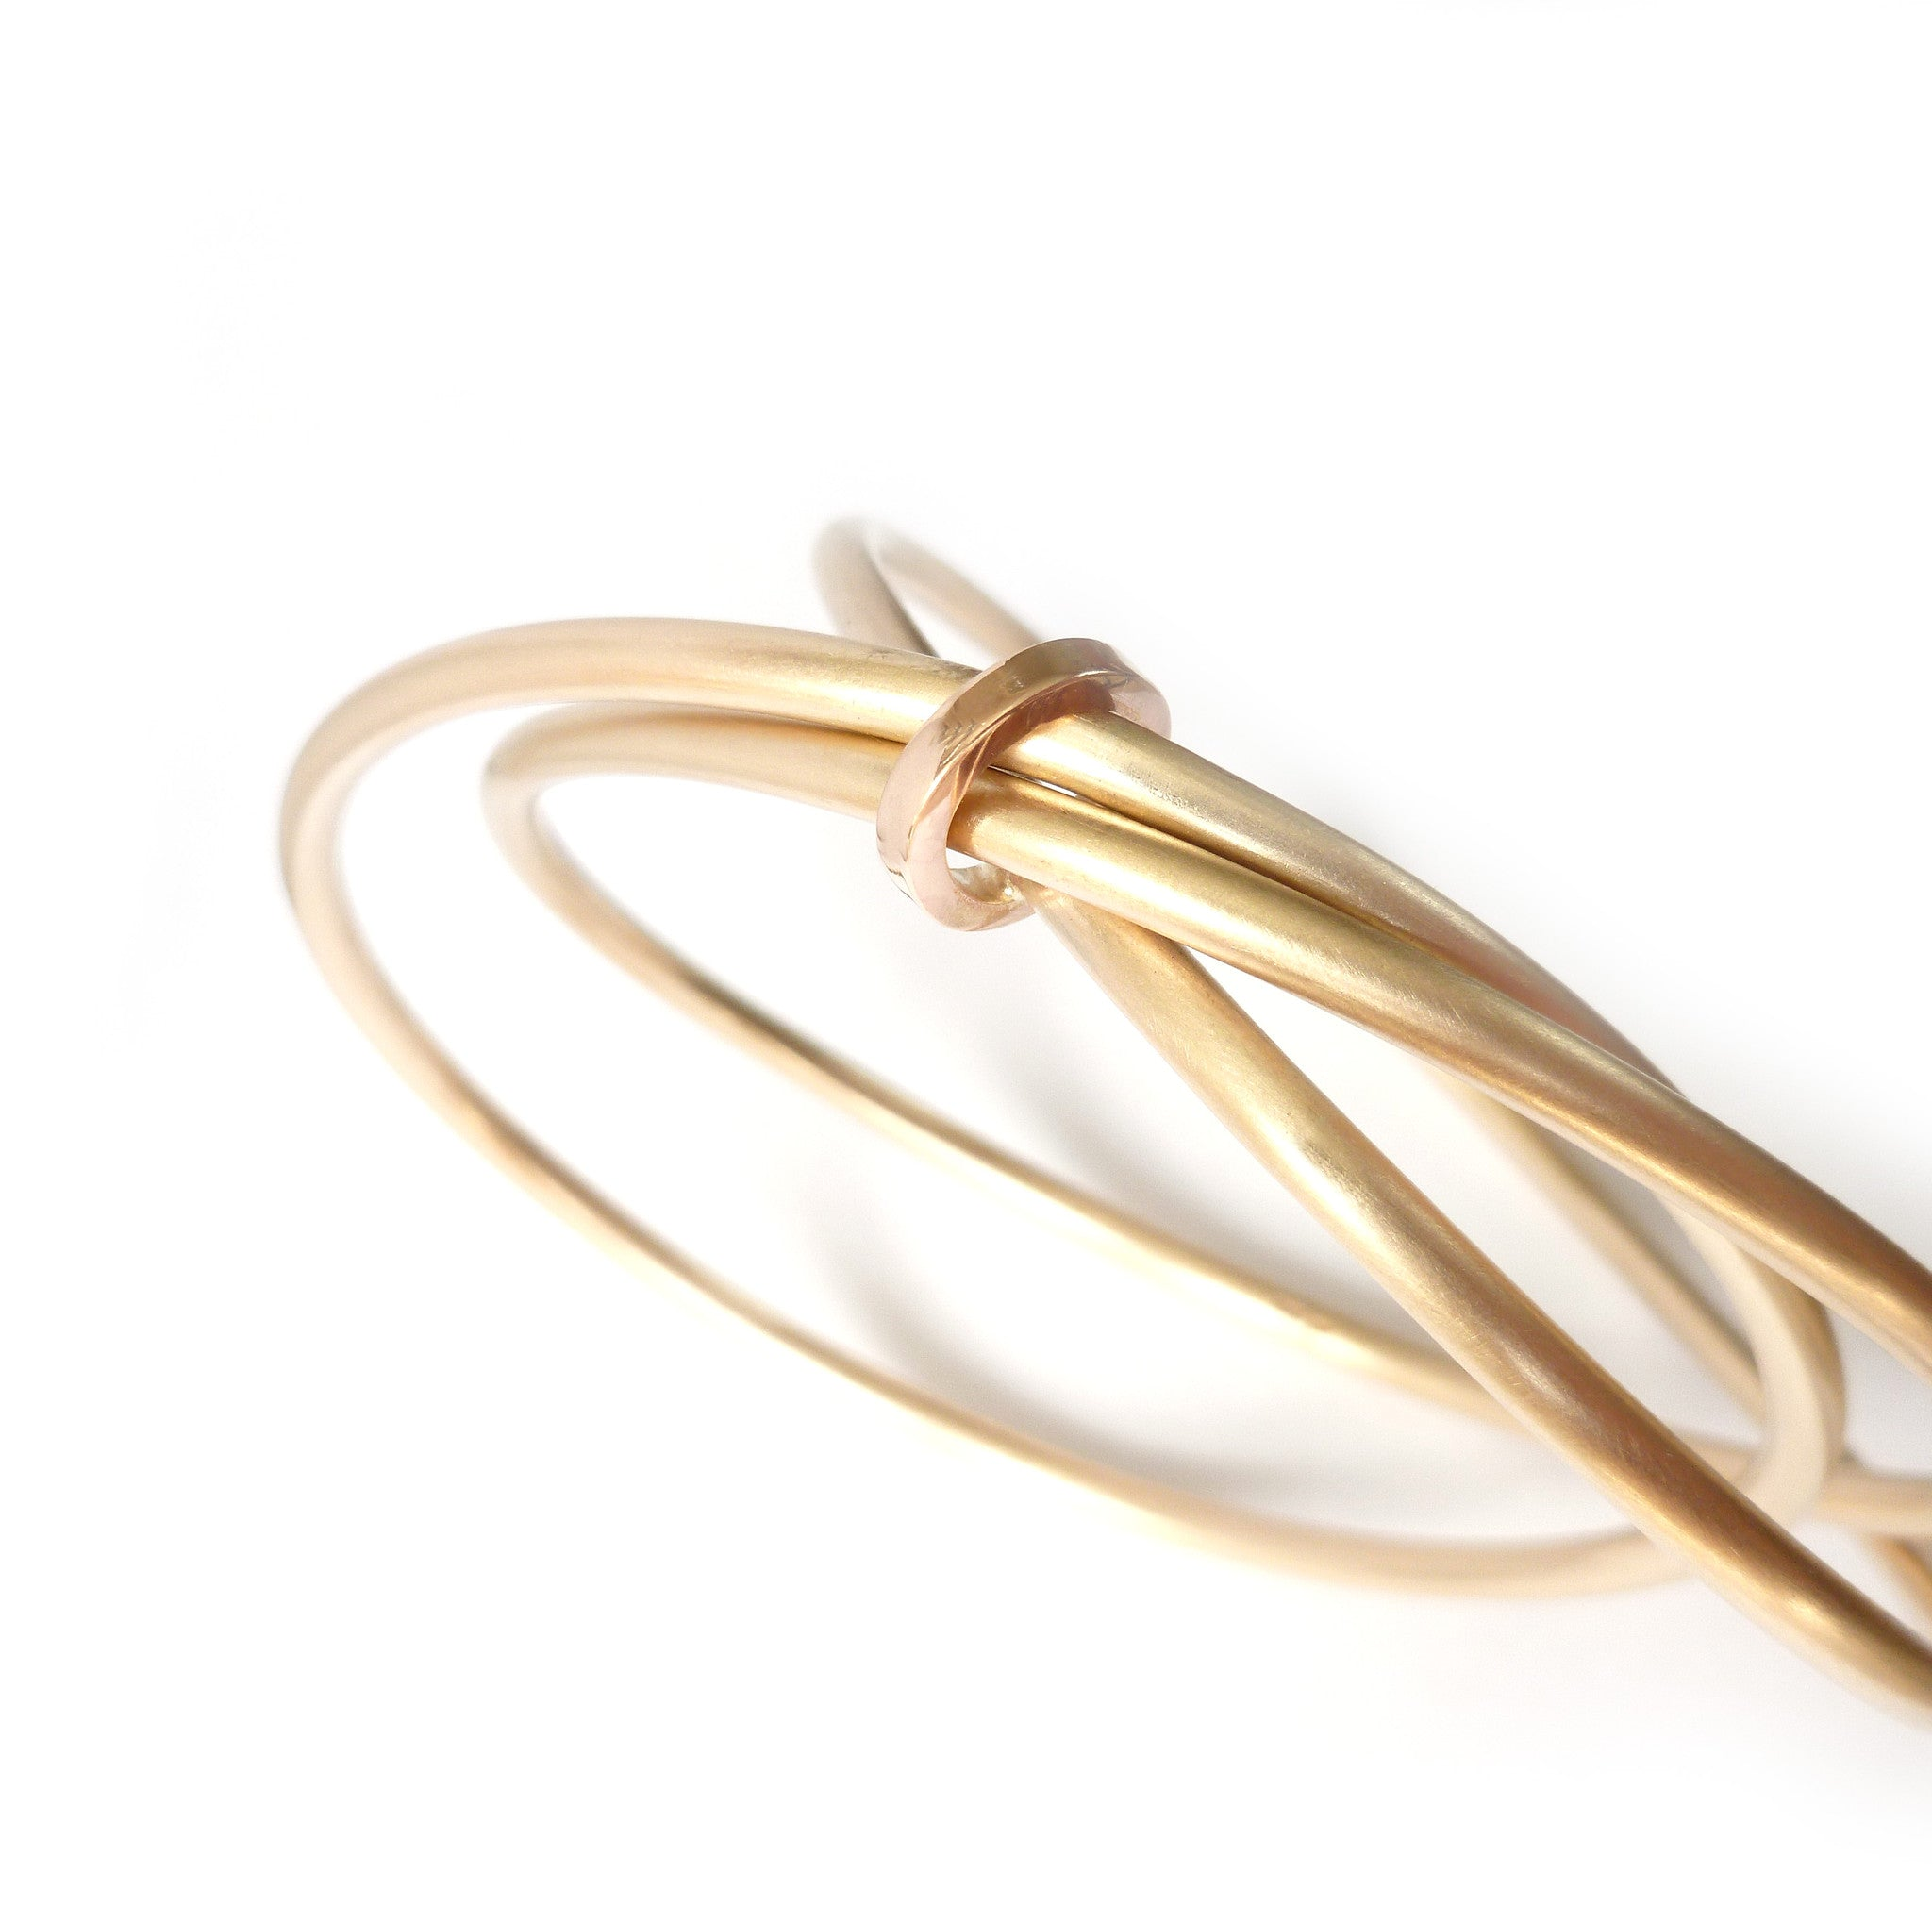 rose silver and products unique gold brushed bangles three bangle with finish unusual modern colour bespoke